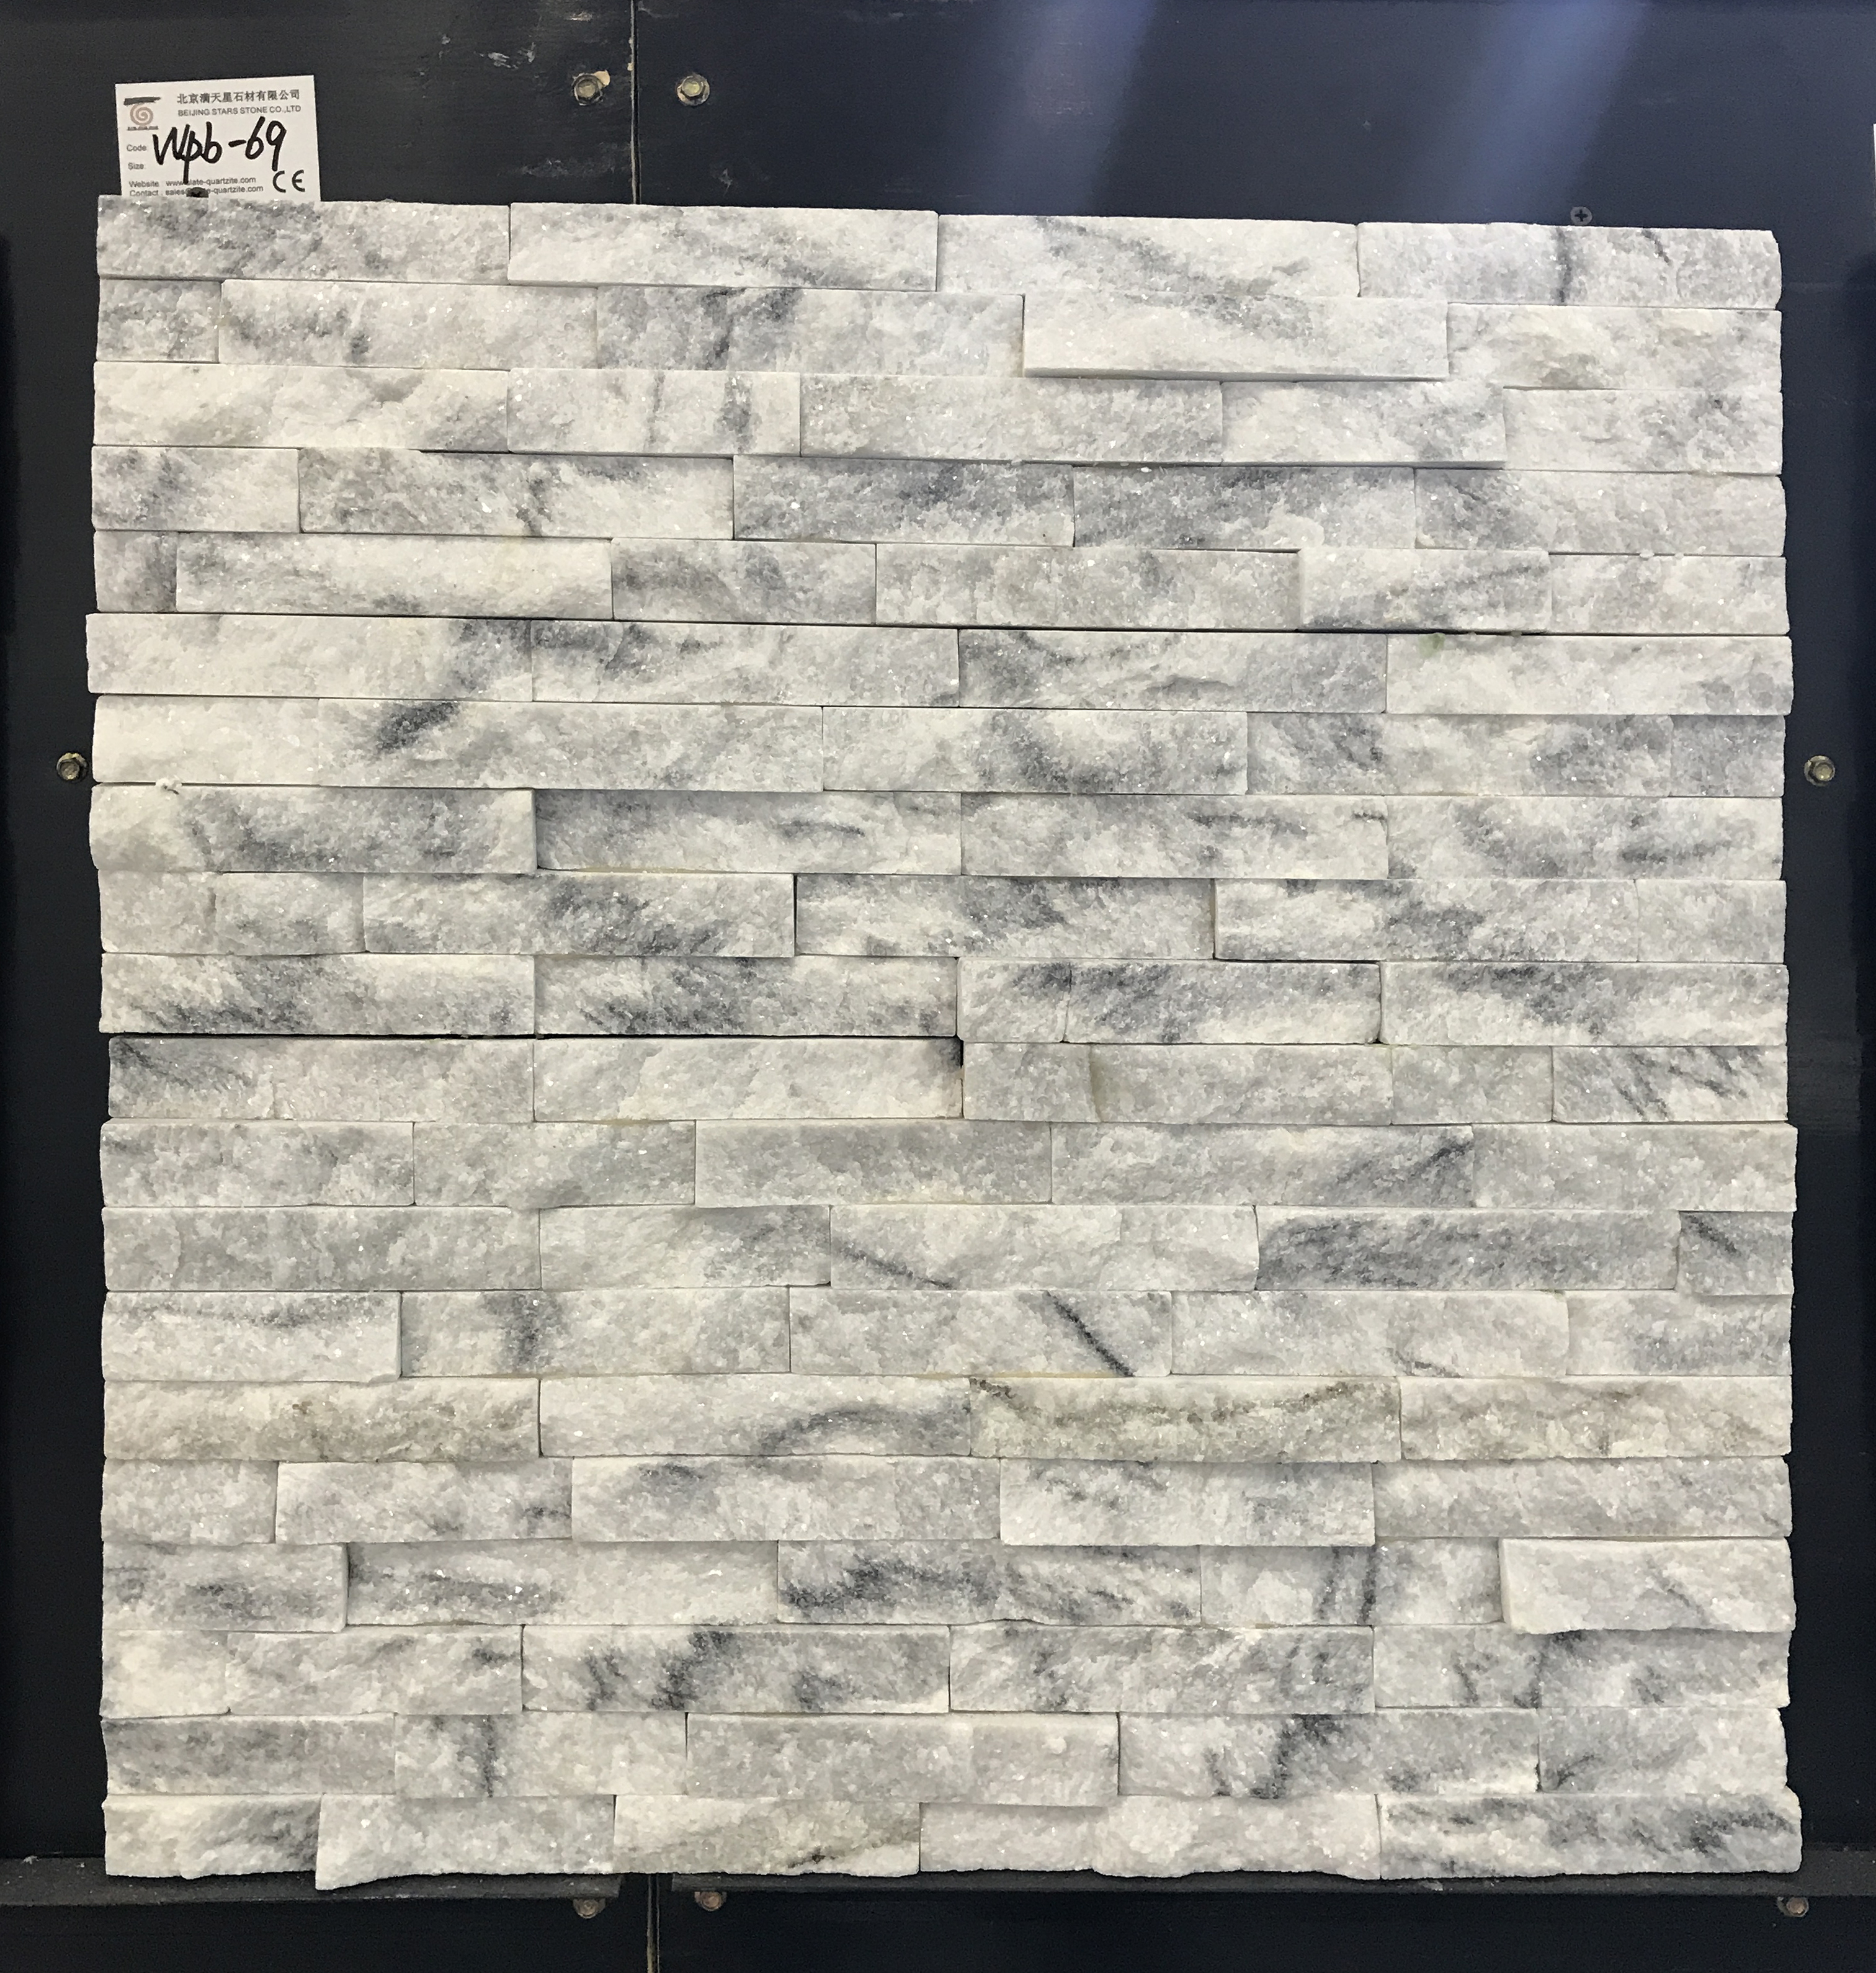 Cloudy Grey Marble Wall Decorative Stone Stack Stone Wall Panels Interior Wall Stone Decoration Buy Wall Decorative Stone Stack Stone Wall